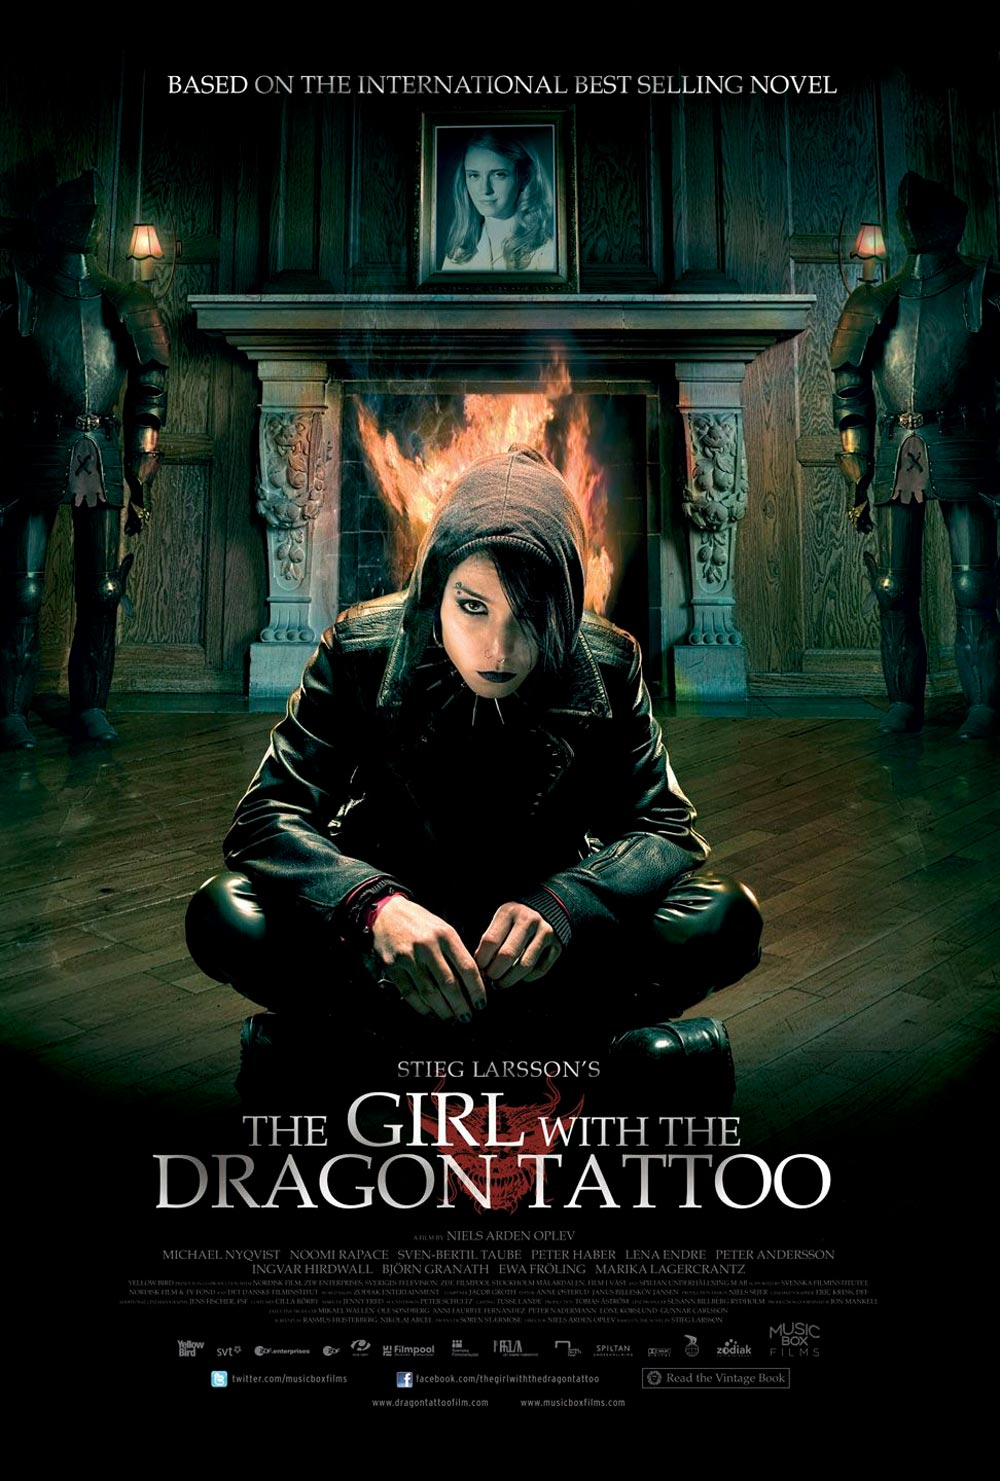 The girl with the dragon tattoo posters filmofilia for The girl with the dragon tattoo story